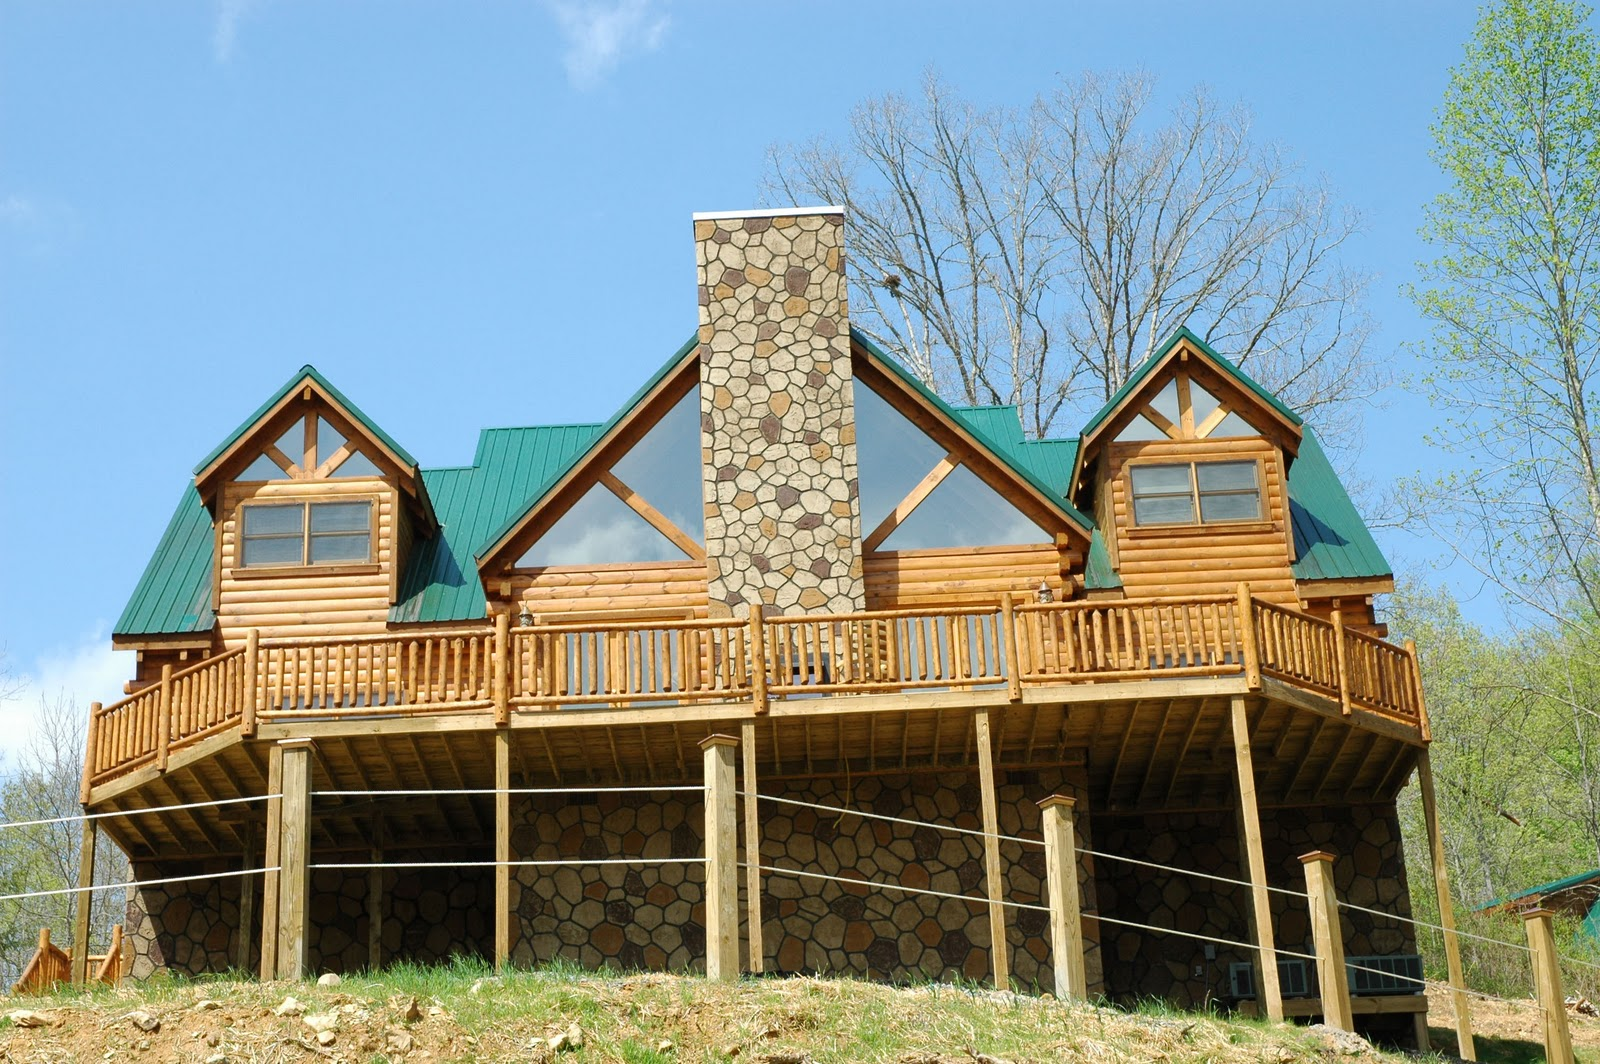 innburg pigeon cheap forge bedroom lodging cabins rent for one tn affordable cabin in luxury gatlinburg honeymoon